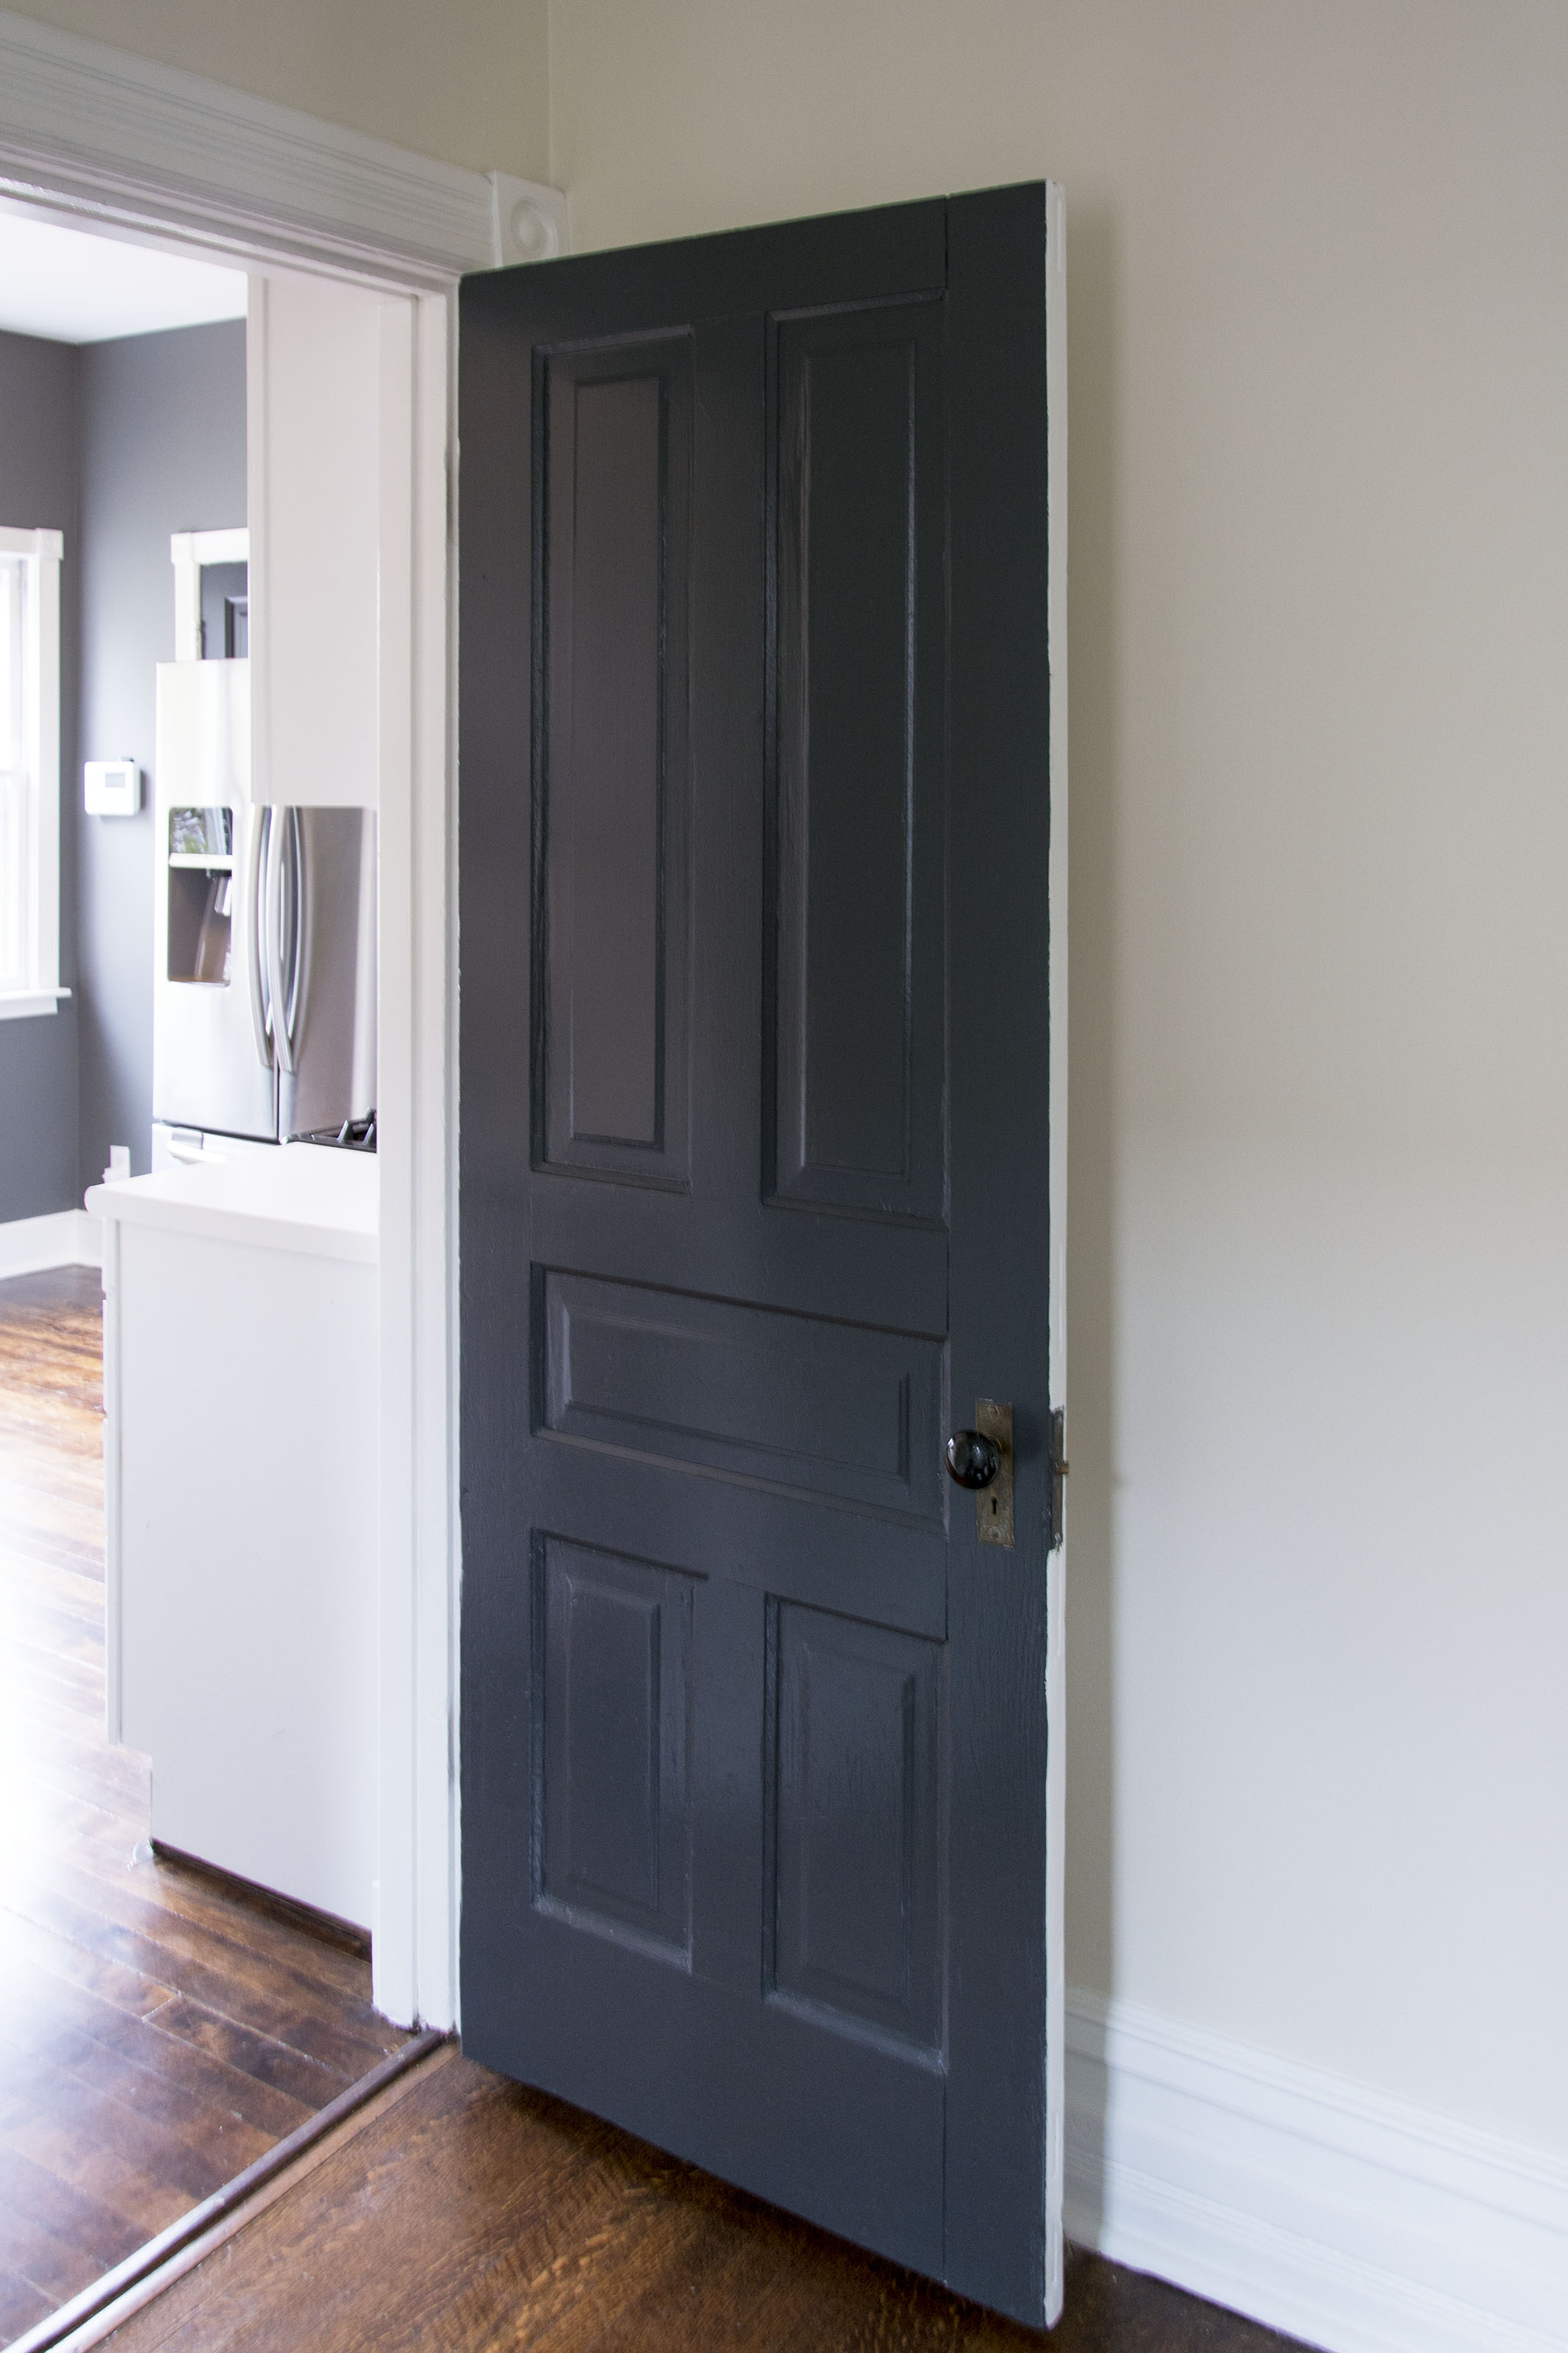 Kitchen Doors: Benjamin Moore Graphite 1603